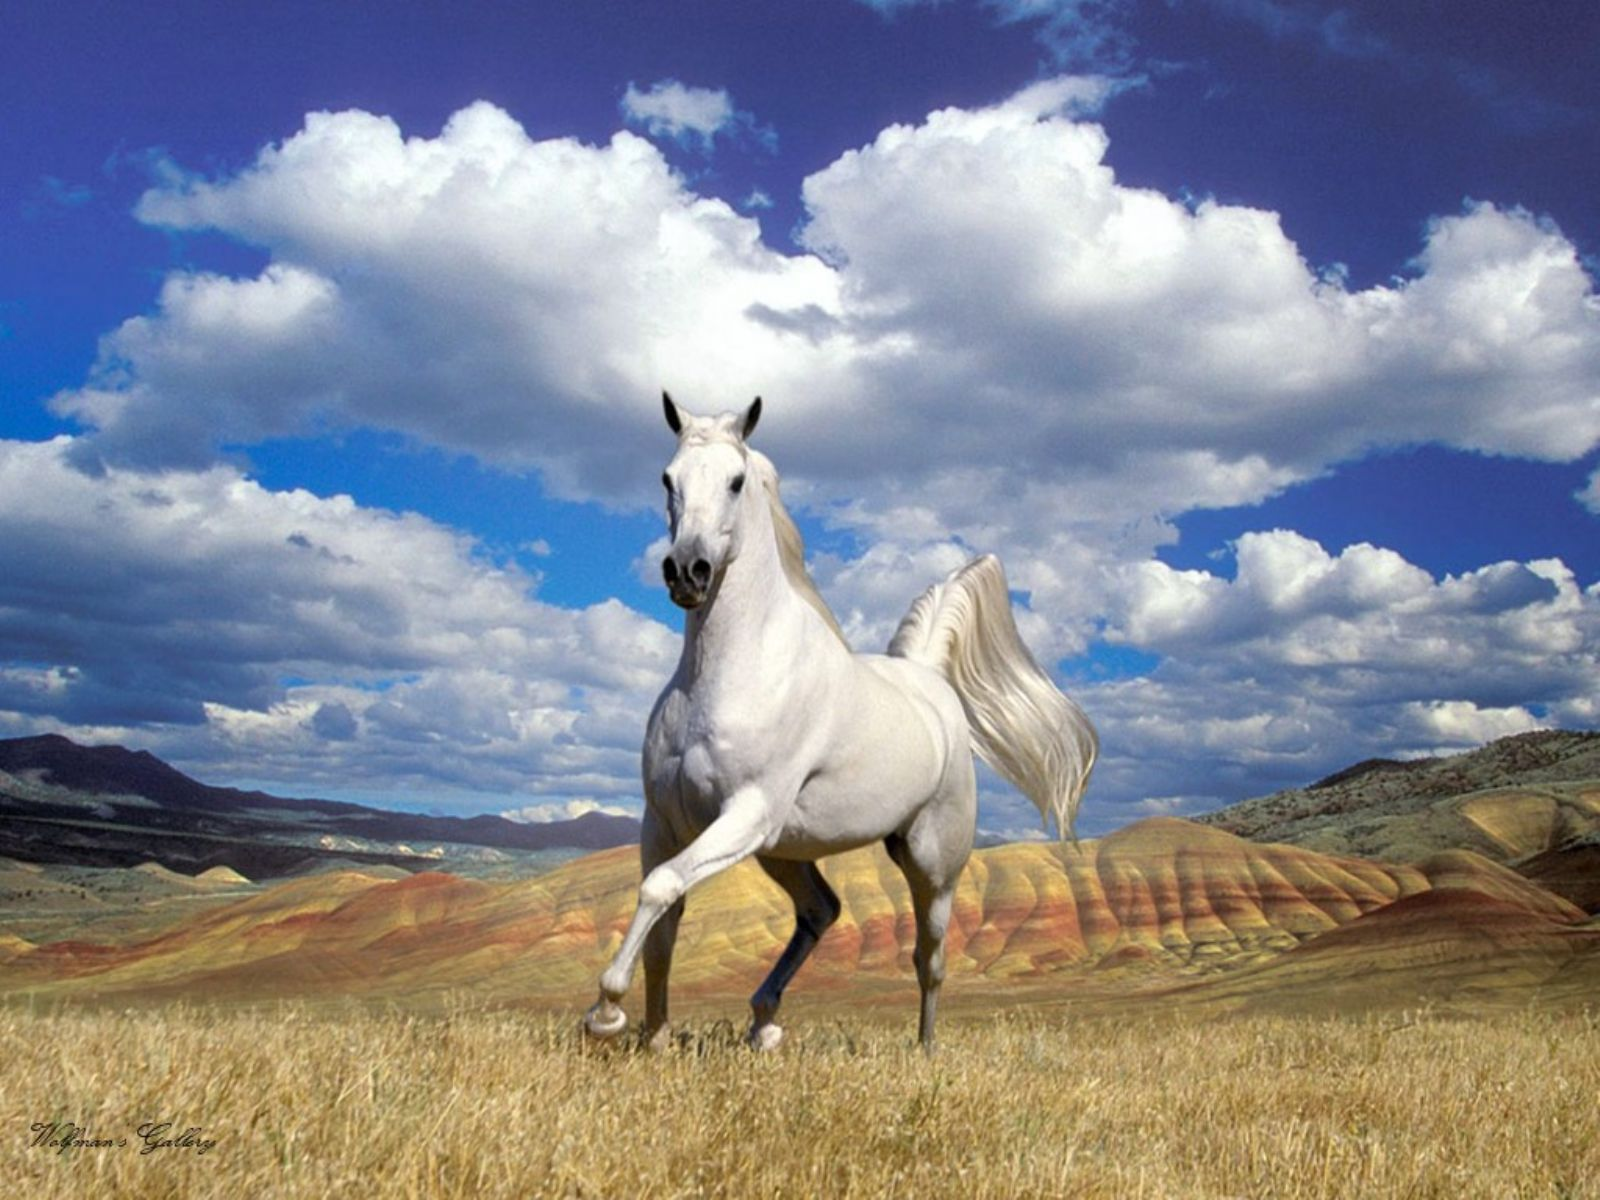 Beautiful White Horse Hd Wallpapers/Images 2013 | Top hd ...  Beautiful White...